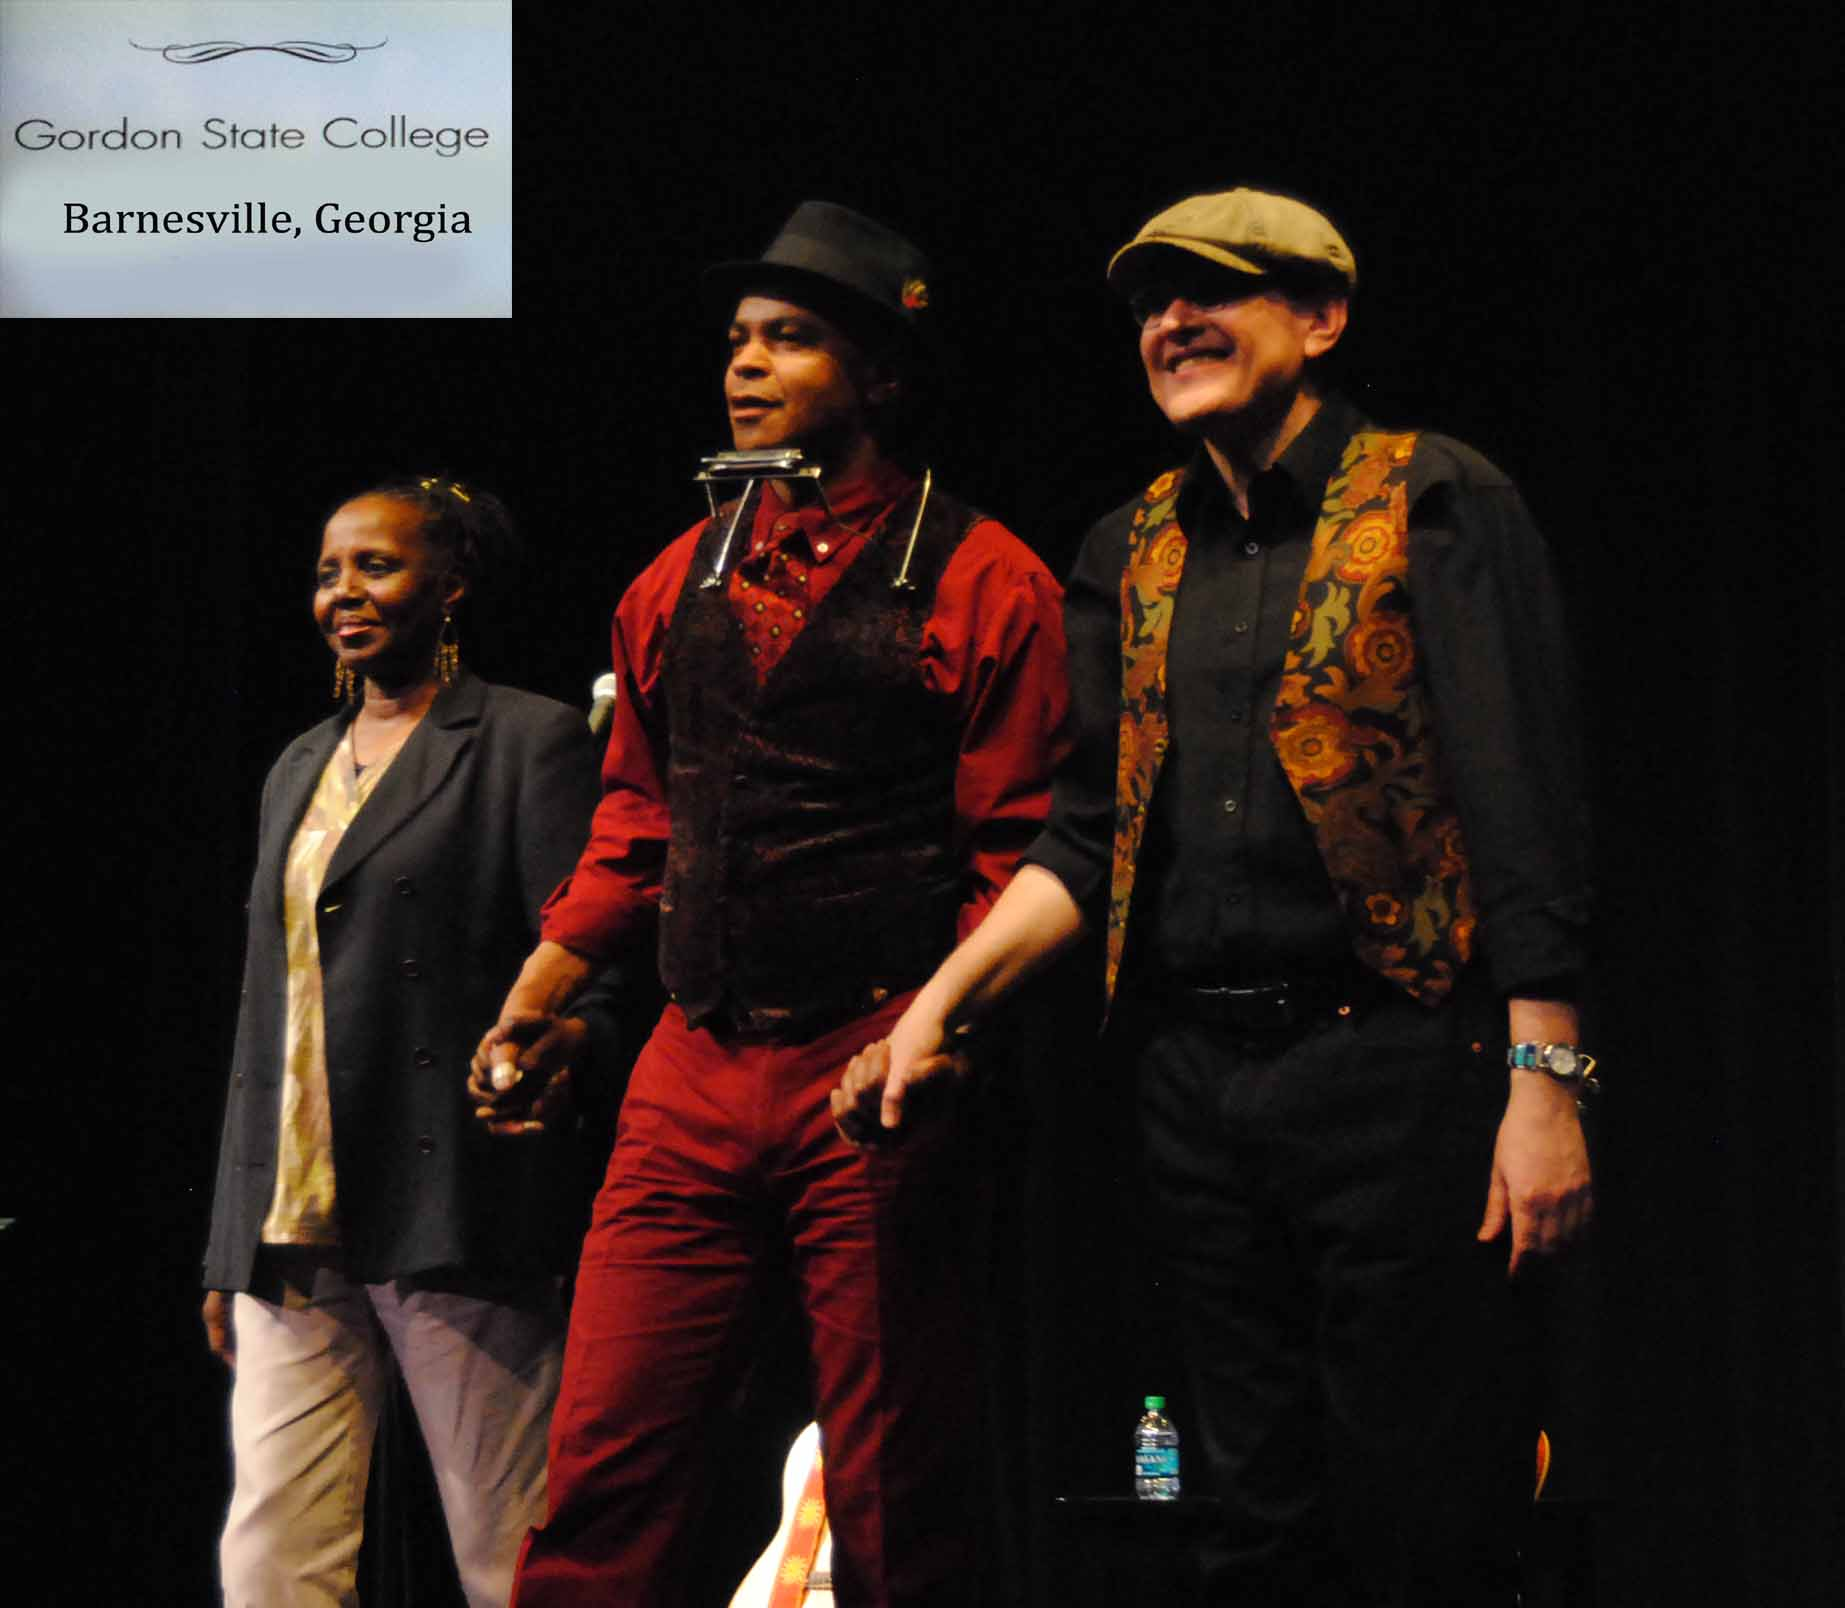 GUY DAVIS & FABRIZIO POGGI feat. Veronica Jackson 2014 USA TOUR GORDON COLLEGE Barnesville,